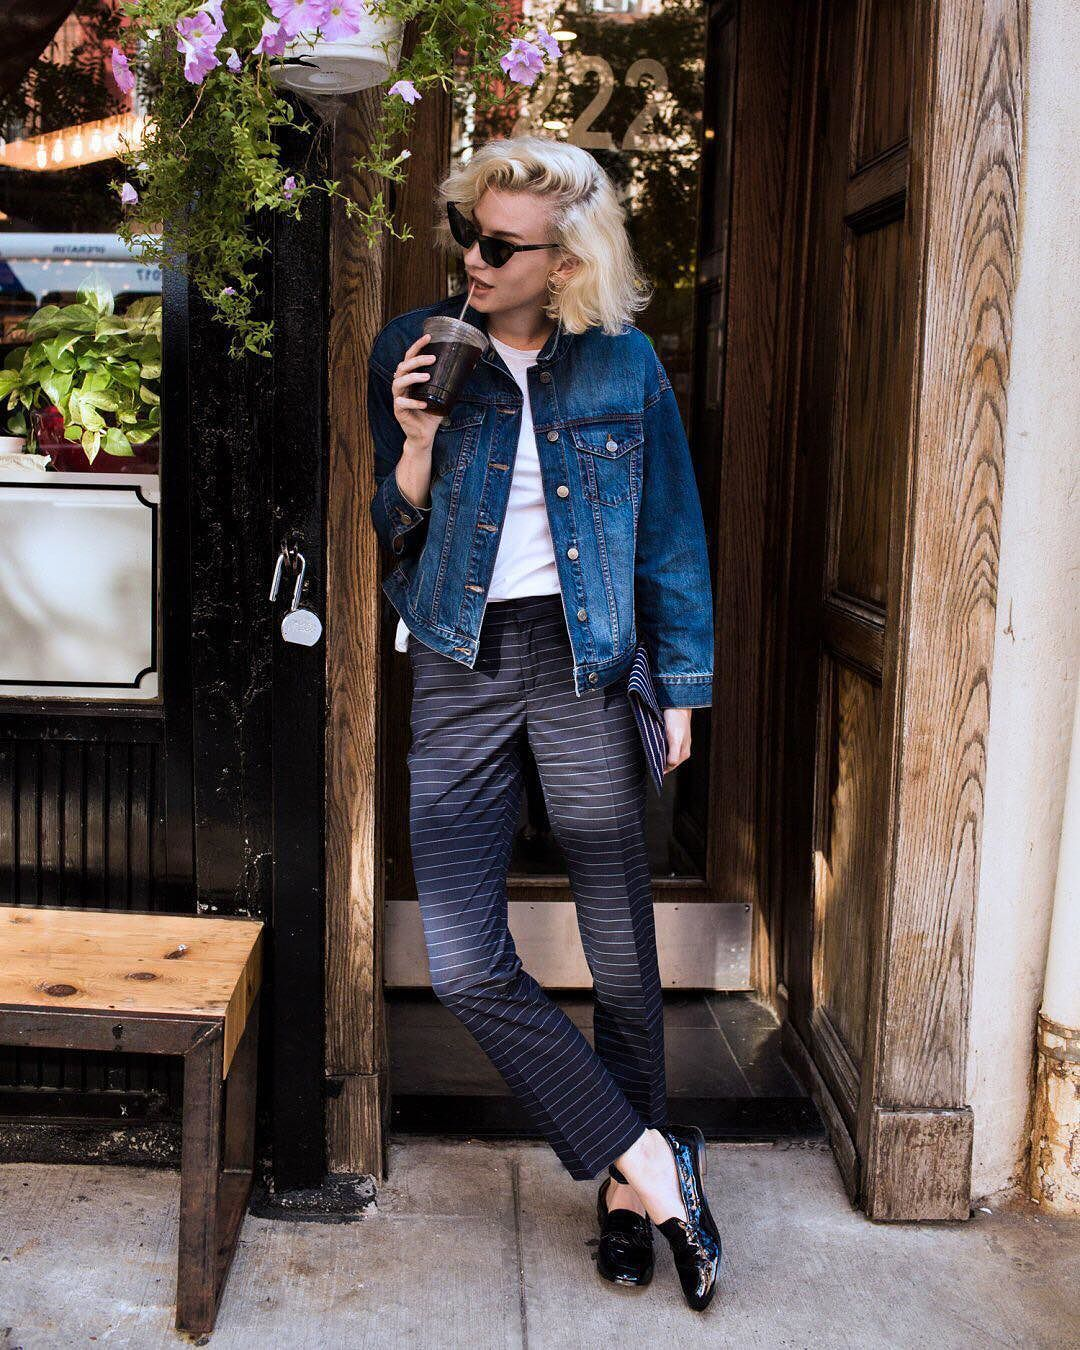 Daring and fashionable - jeans with holes 44